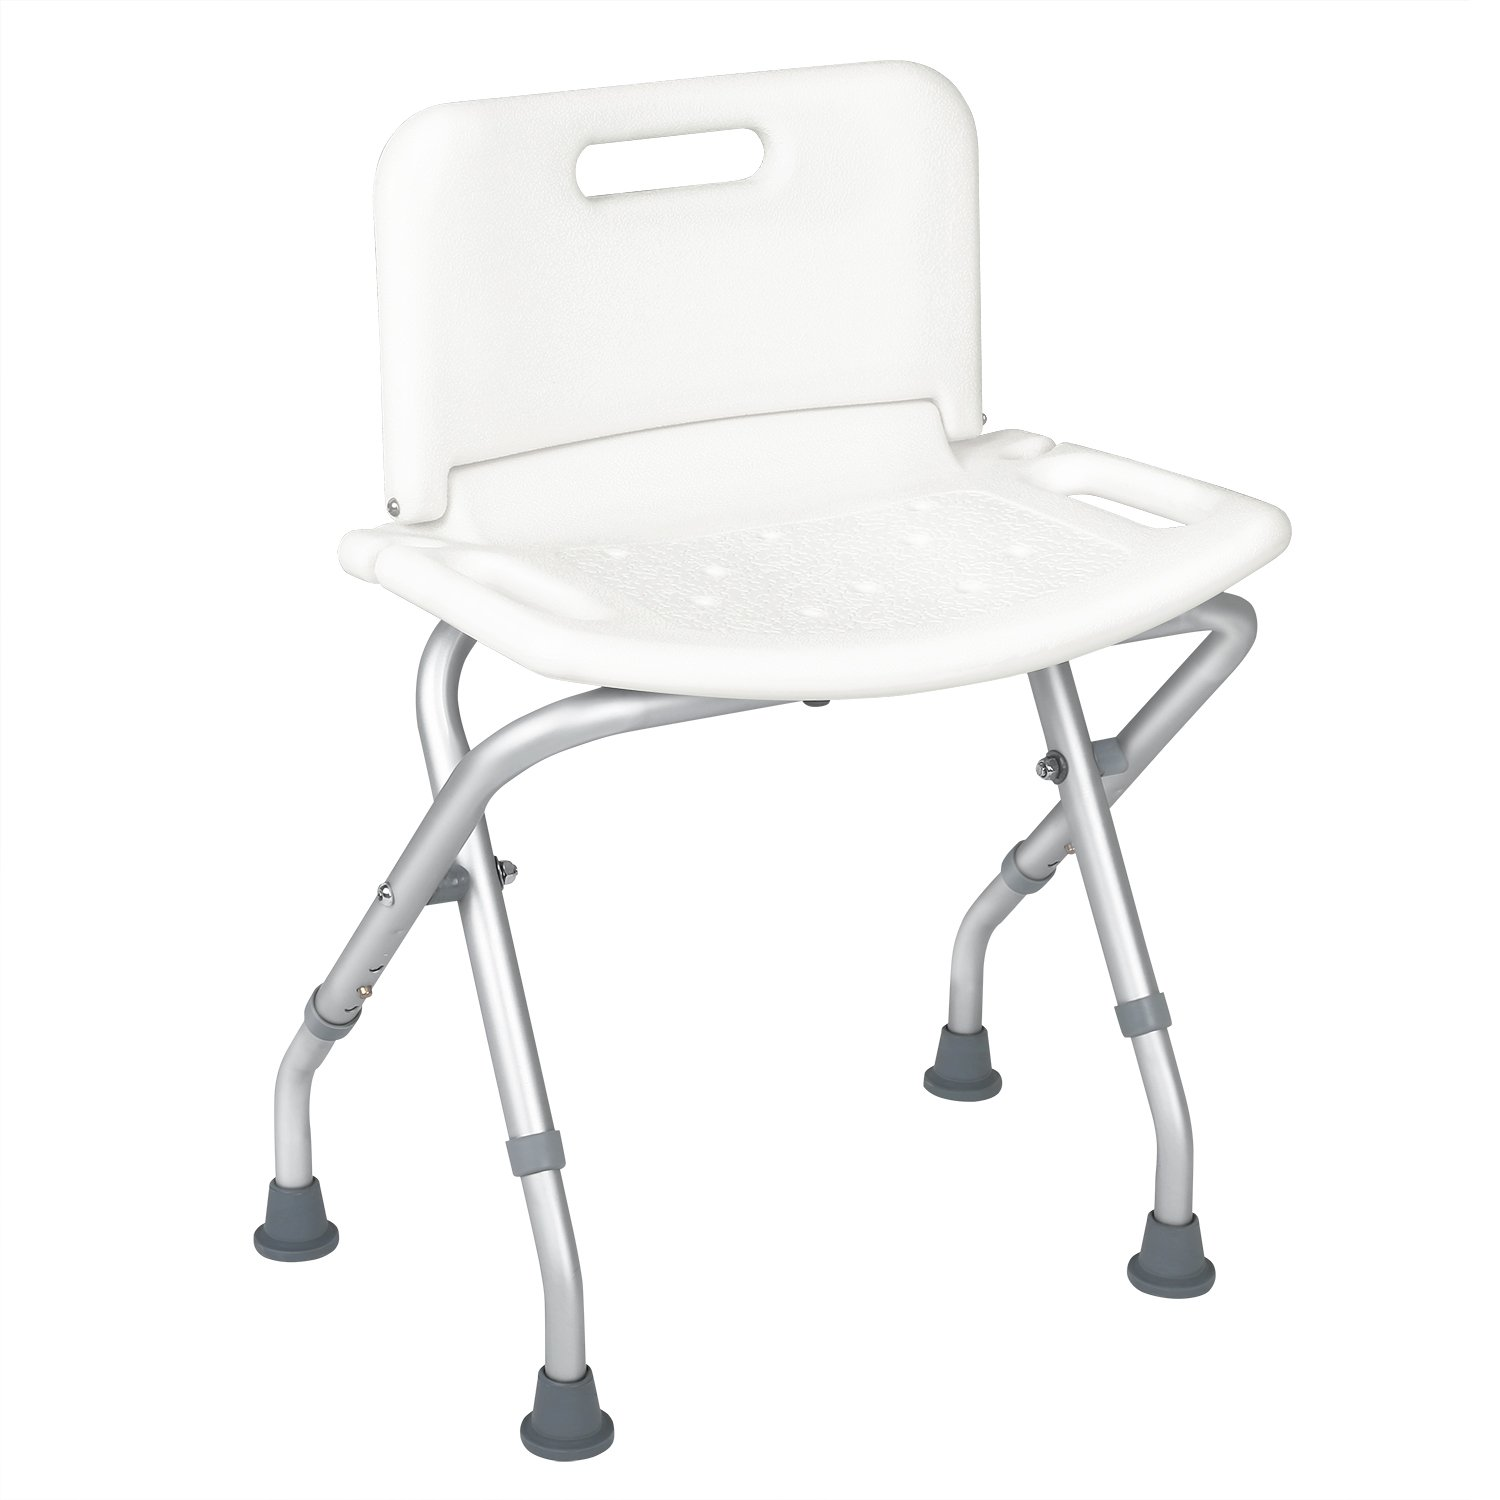 JCMASTER Folding Shower Chair with Back for Disabled durable service ...